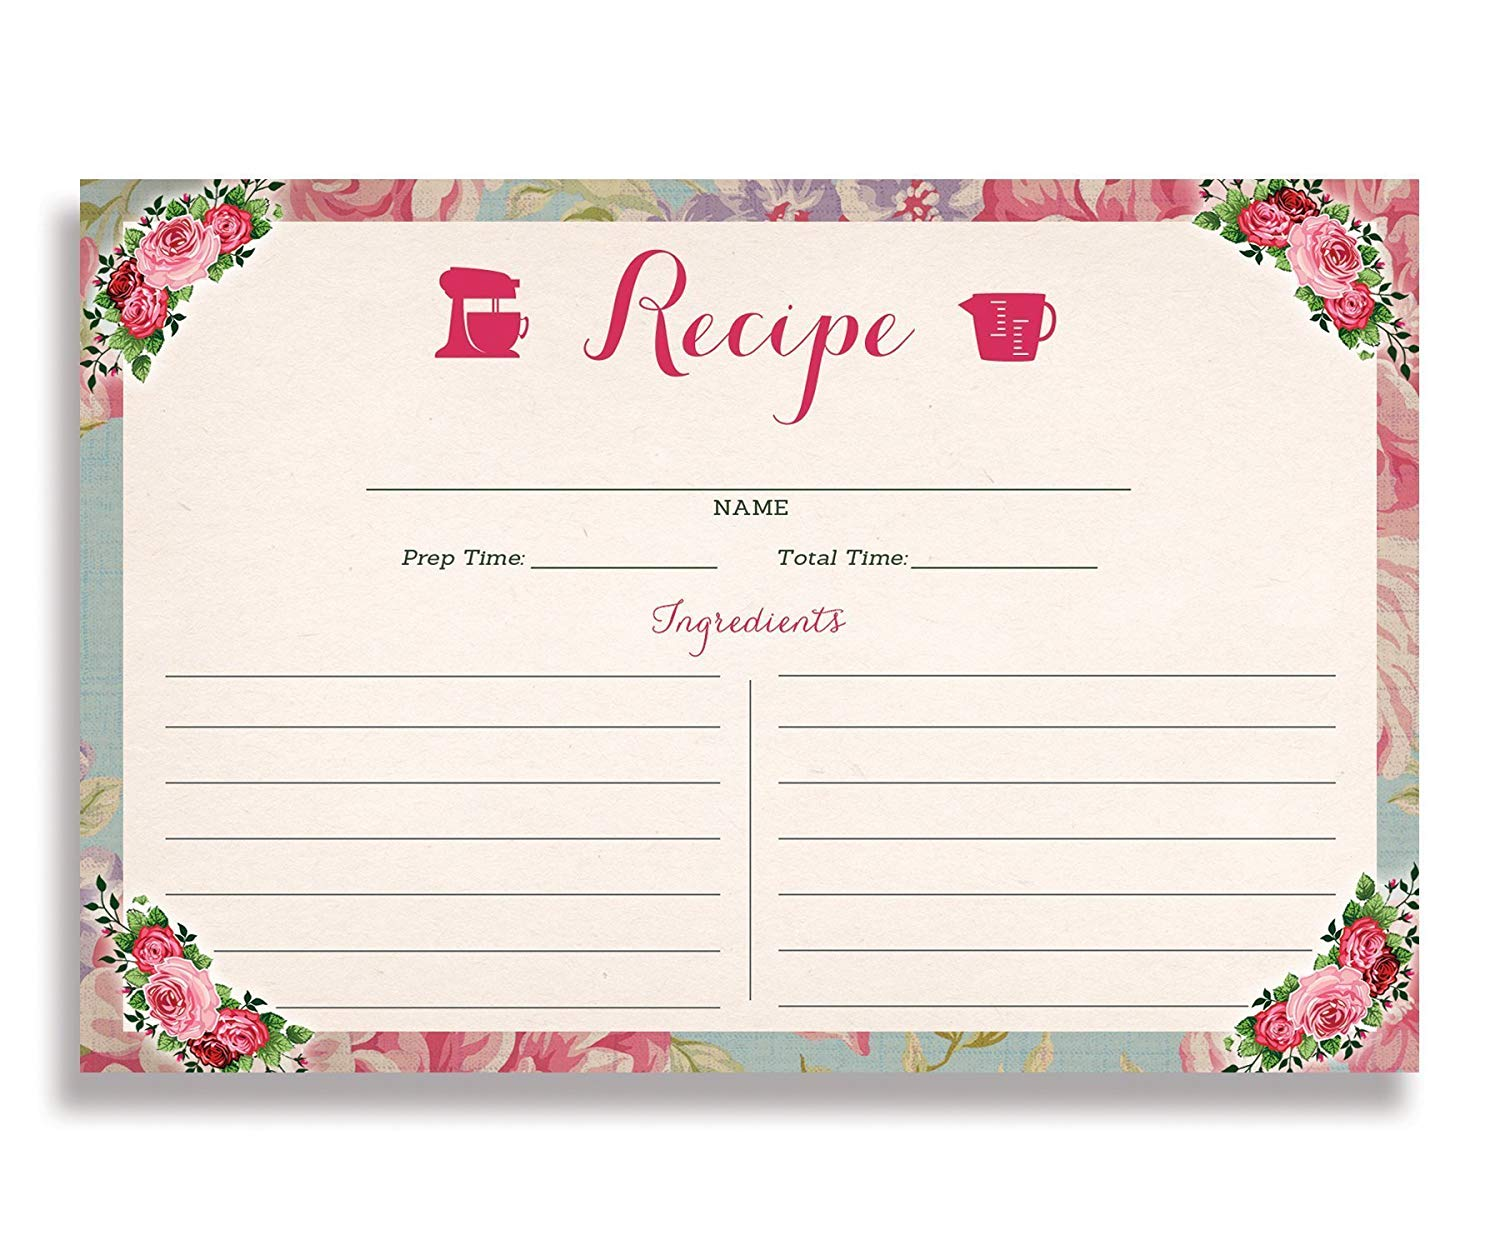 Floral and Gold Stripe Recipe Cards 4x6 inches Set of 25 Mady Gold Double Sided Card Stock Recipe Card Set